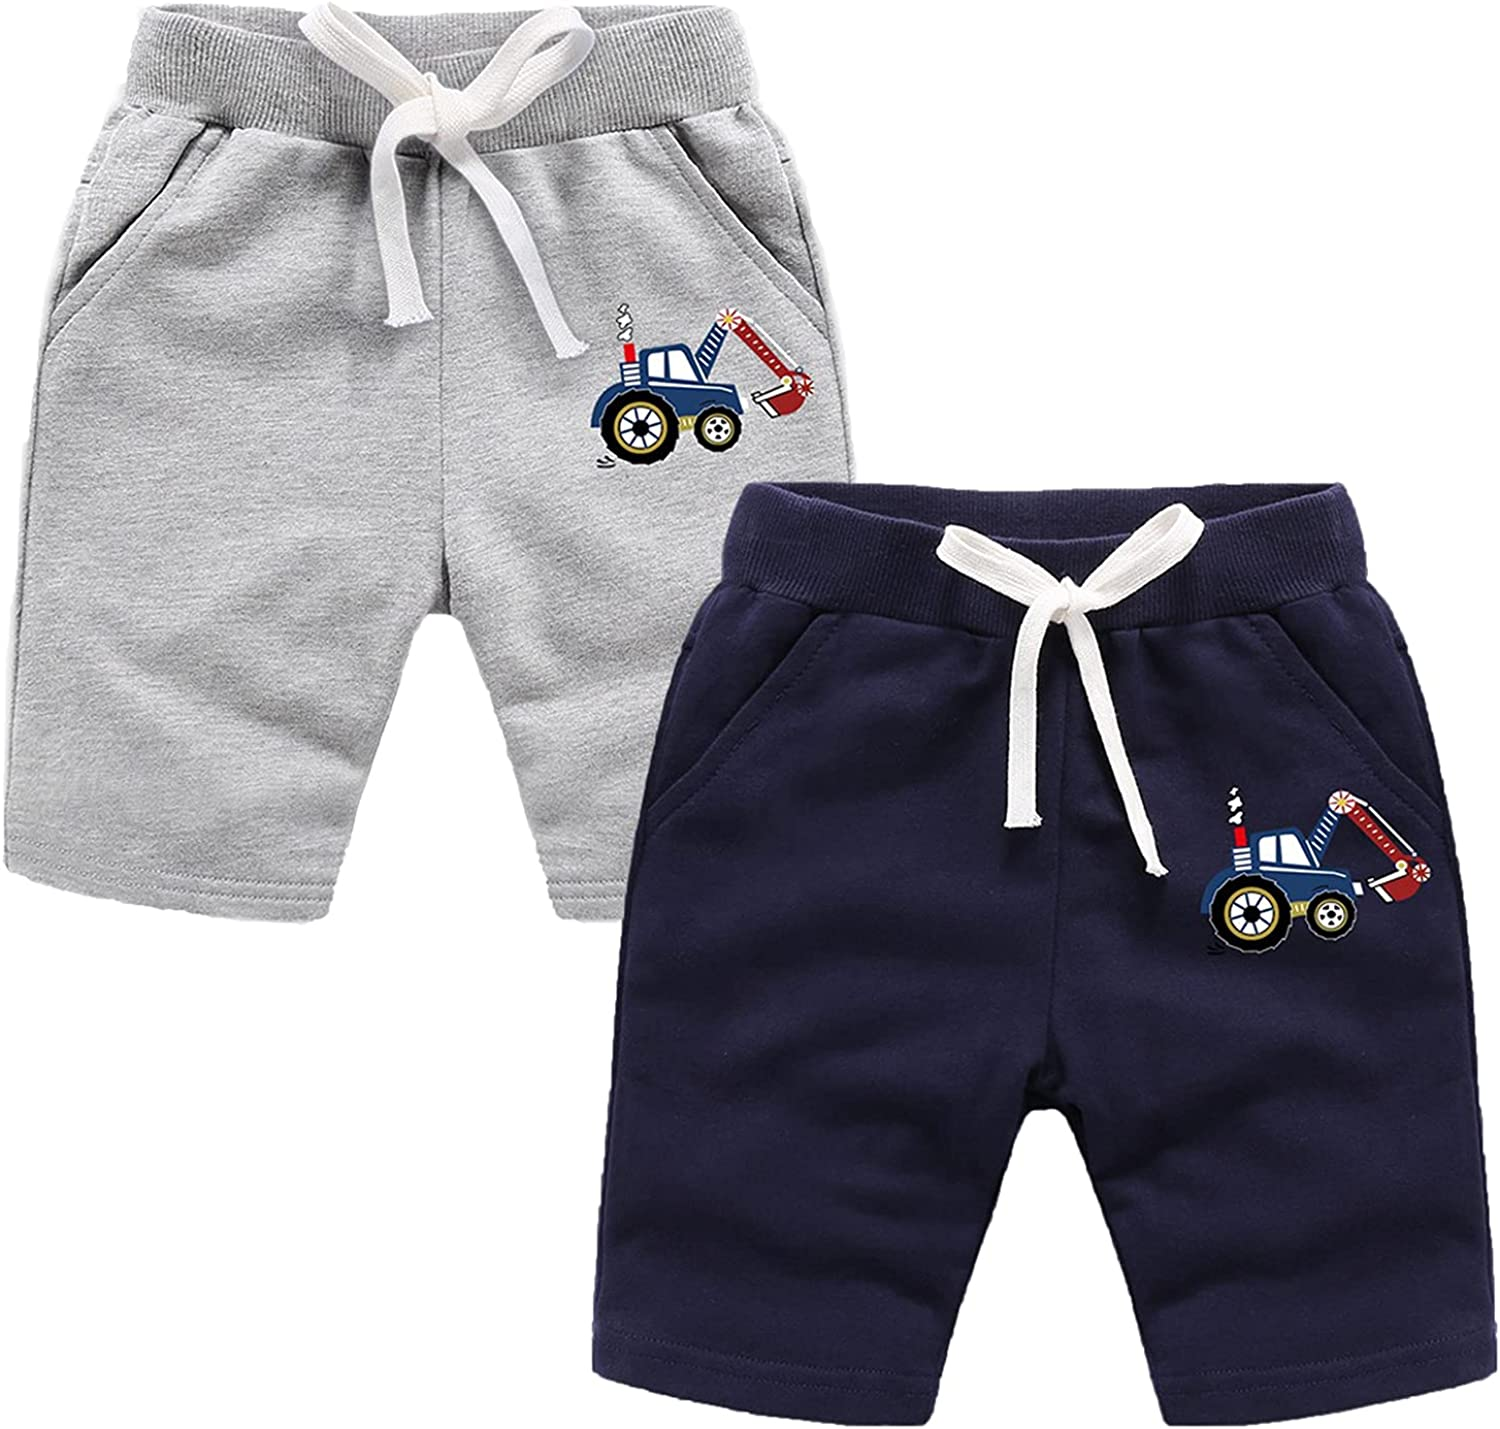 Baby Boys Girls Summer Rare 2 Pack Cotton Shorts Pull Surprise price Toddler Casual